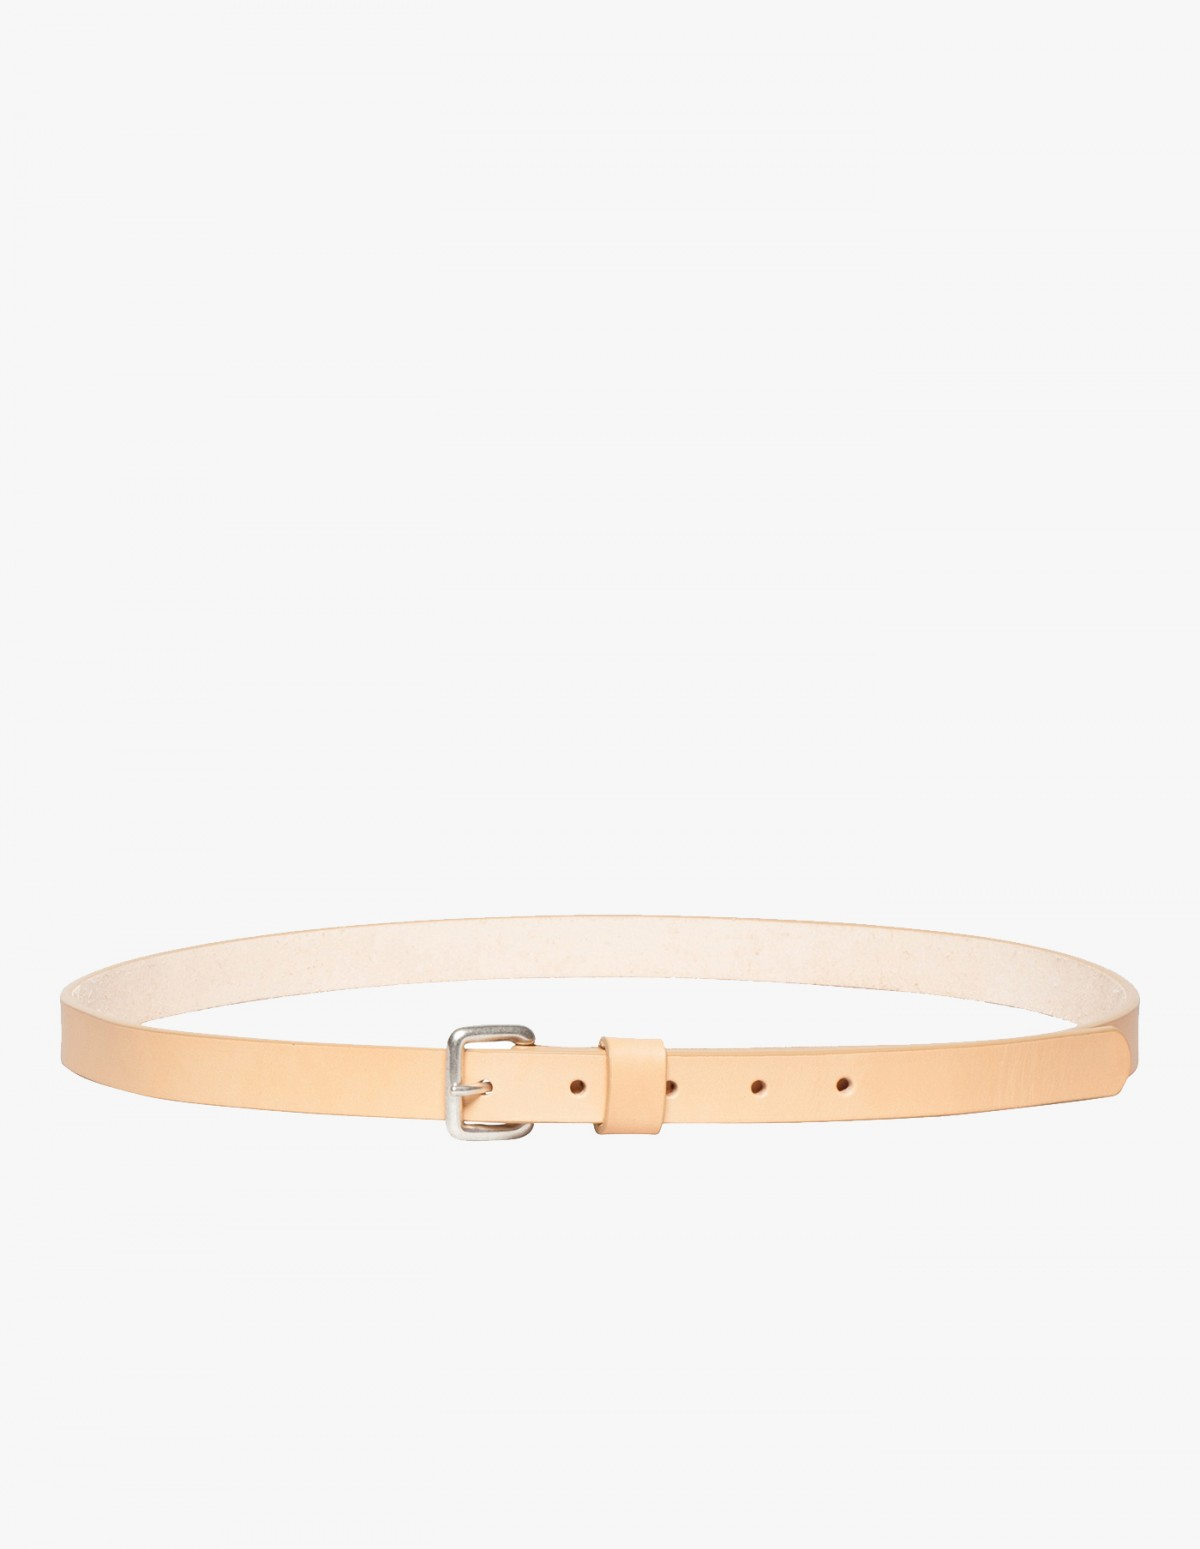 Norse Projects Benjamin 30 Leather in Natural Leather